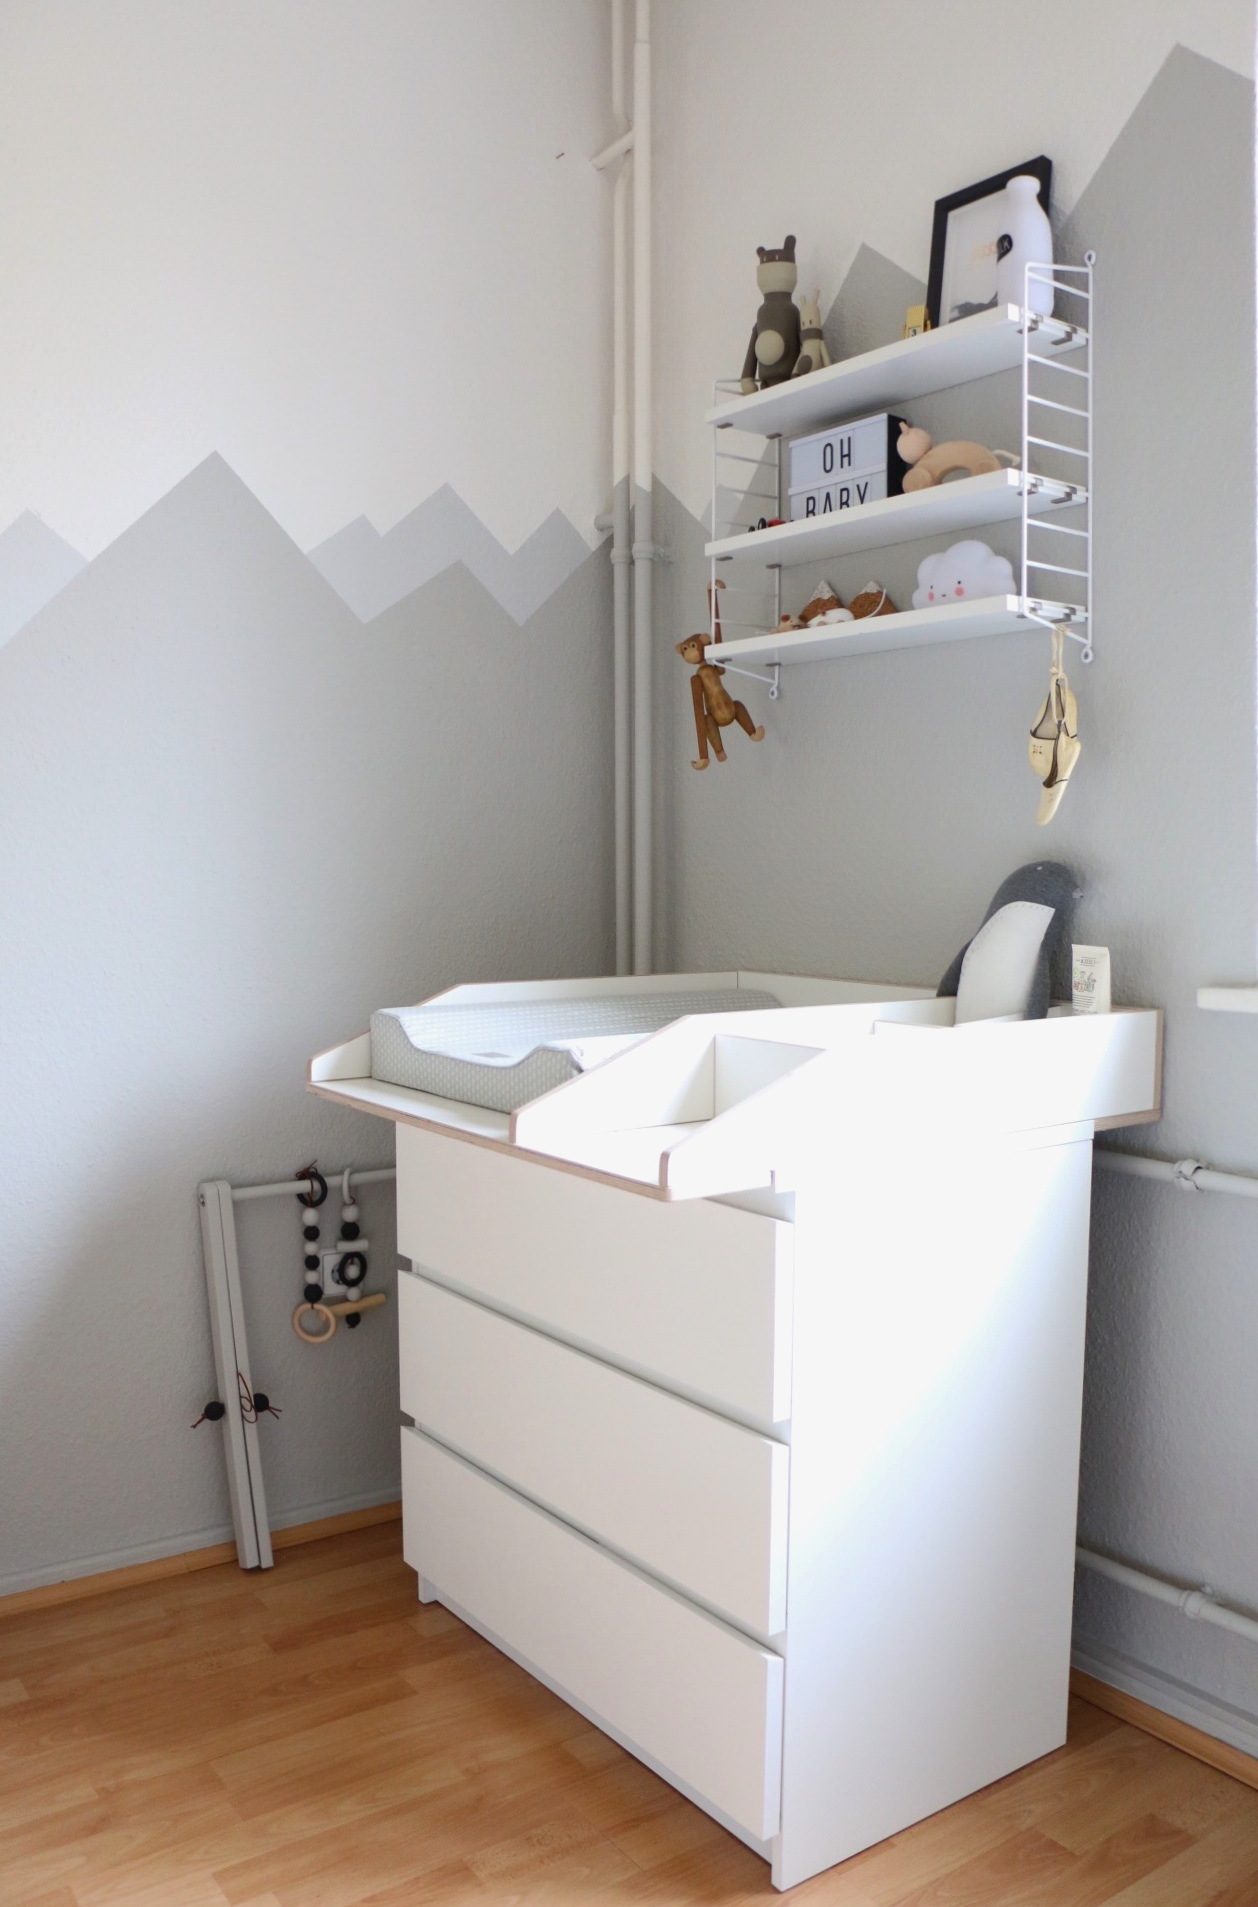 mountain nursery wallpaint wandgestaltung im babyzimmer by eat blog love - Kinderzimmer Wandgestaltung